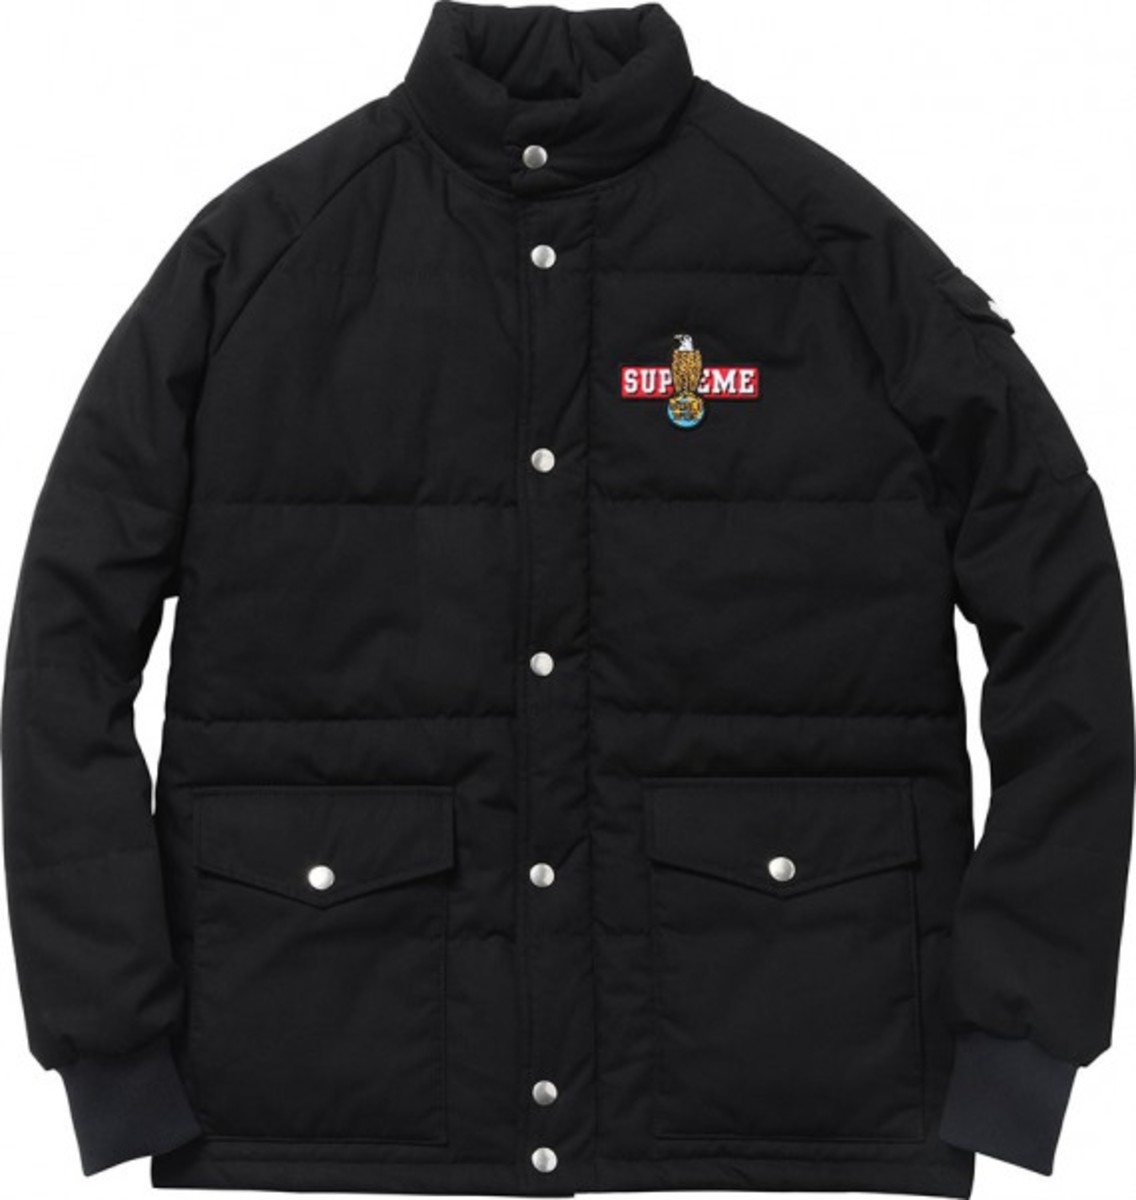 4-mechanics_puffy_jacket-zoom_1345455028